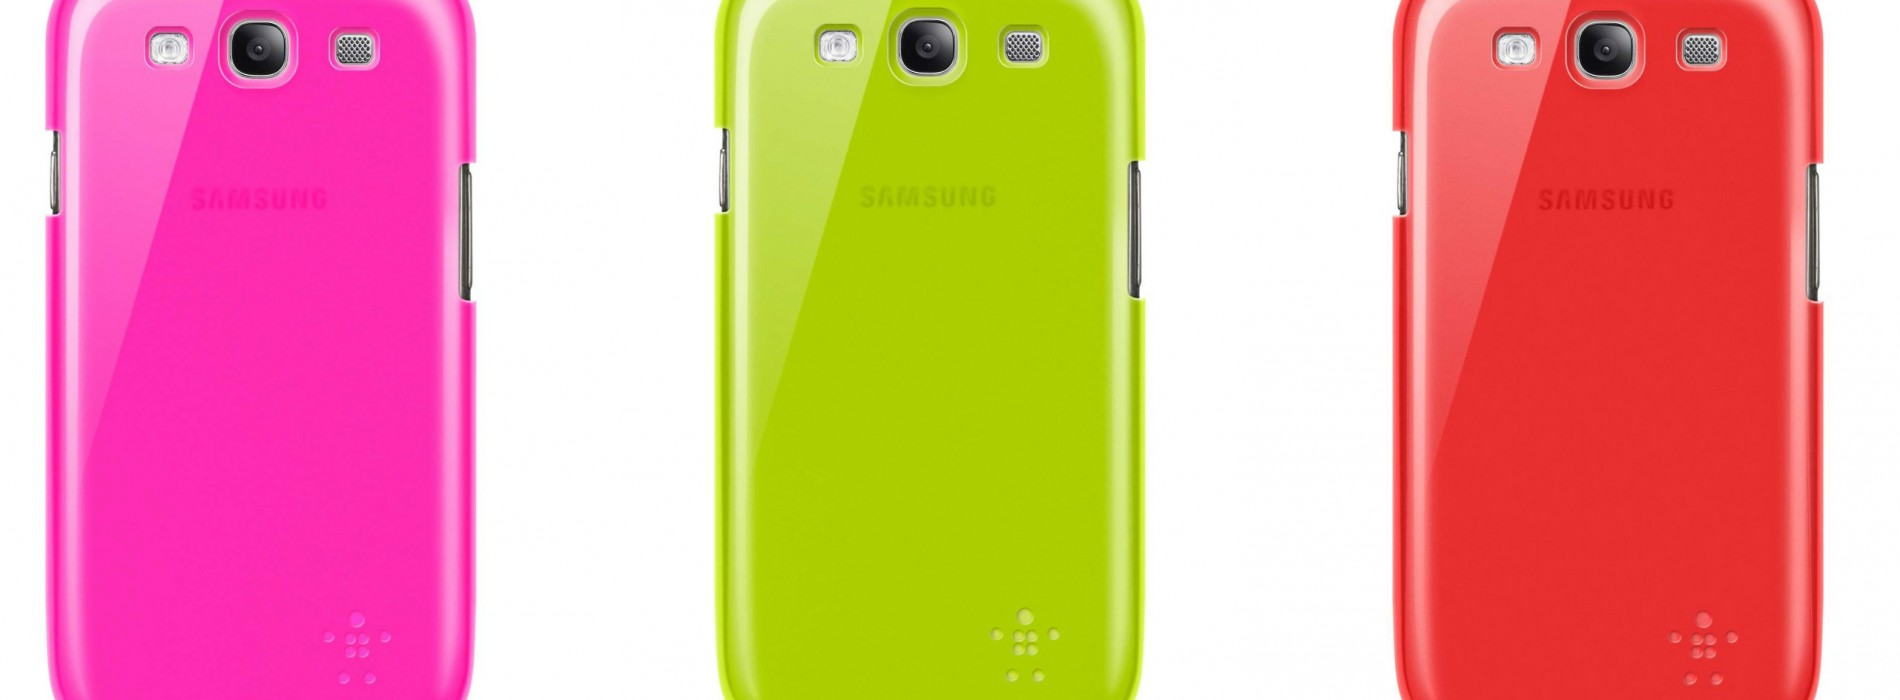 Belkin Shield Sheer Case for Samsung Galaxy S3 (up to 82% OFF)